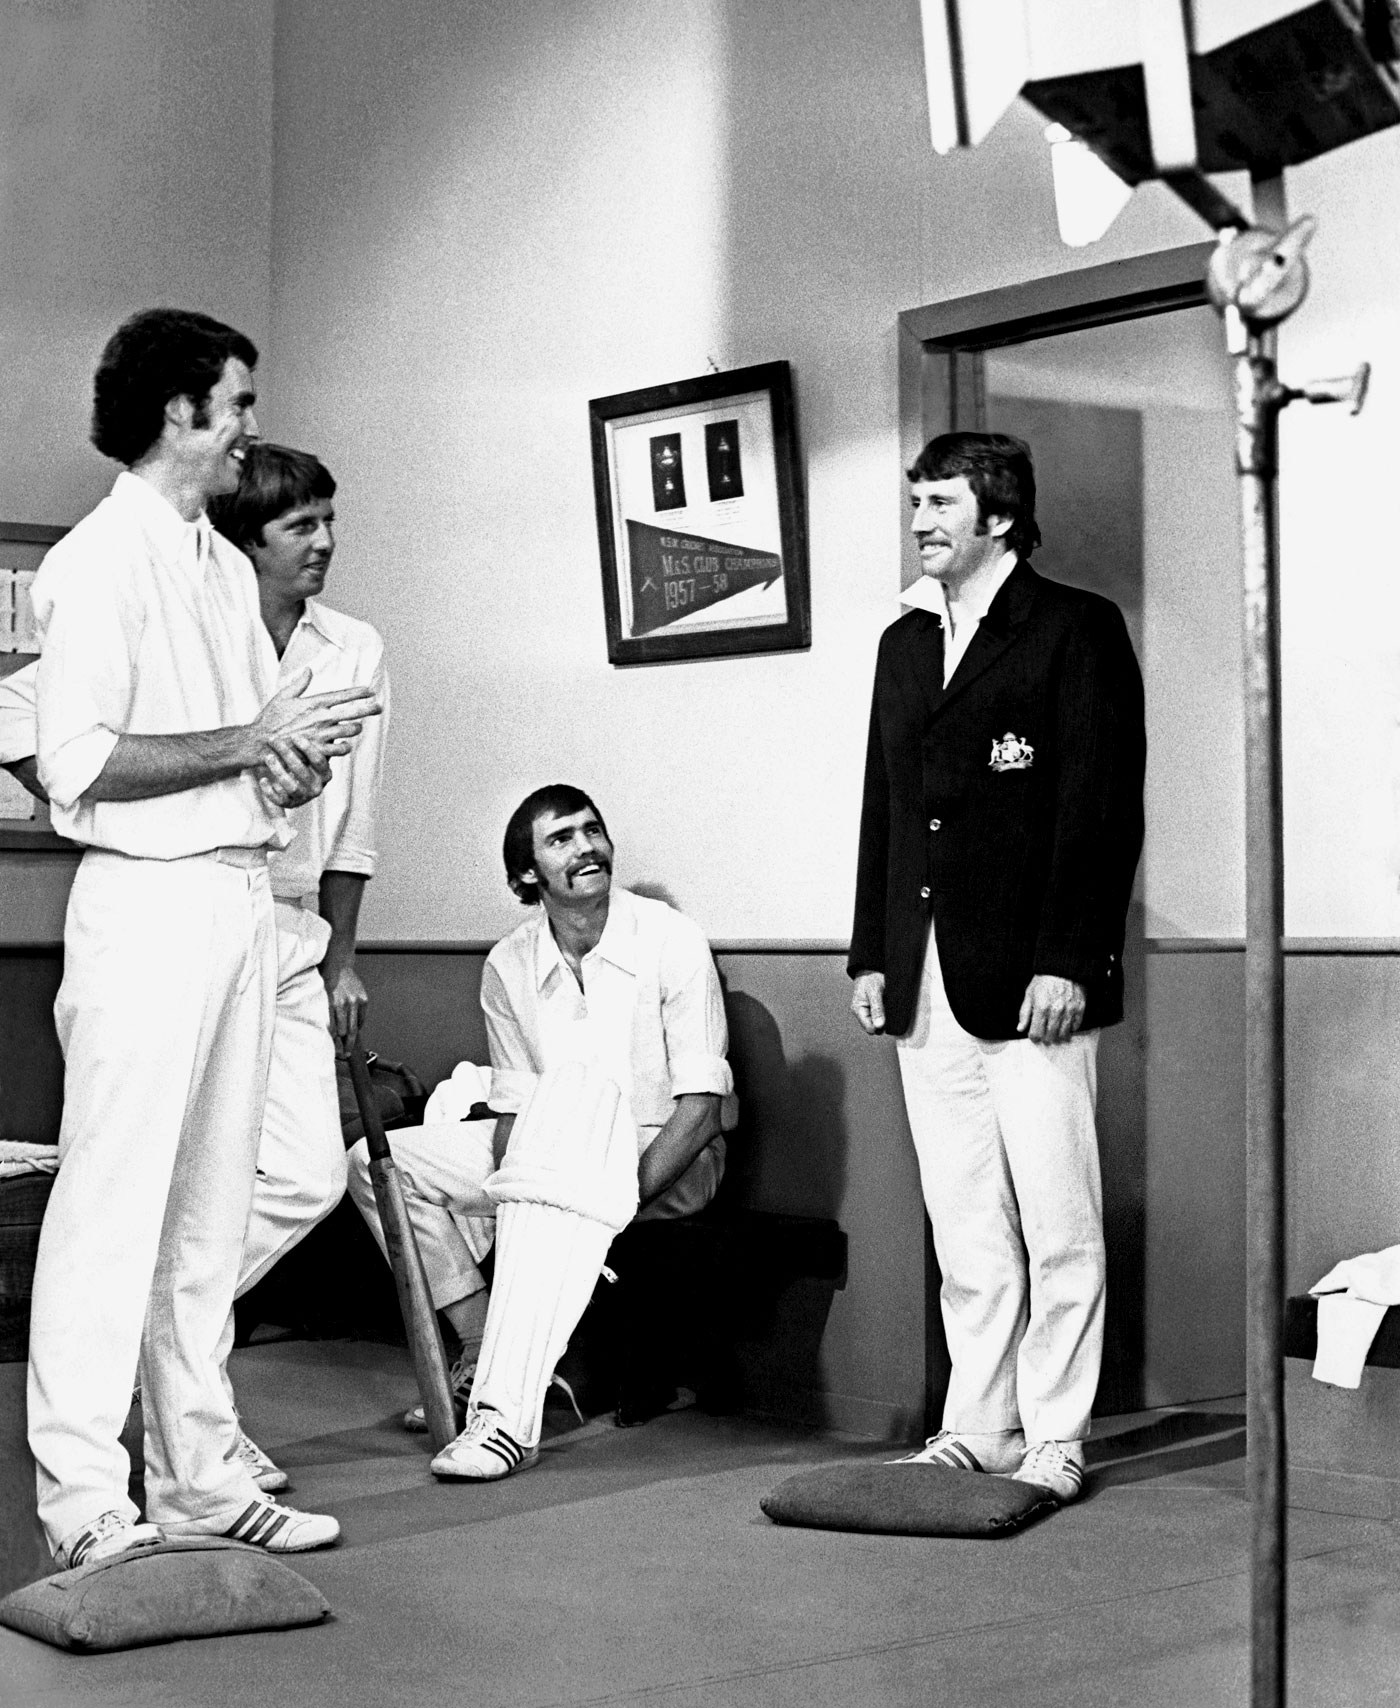 Ian Chappell (in jacket) shoots a television commercial with (clockwise from left) Greg Chappell, Jeff Thomson and Richie Robinson in 1975